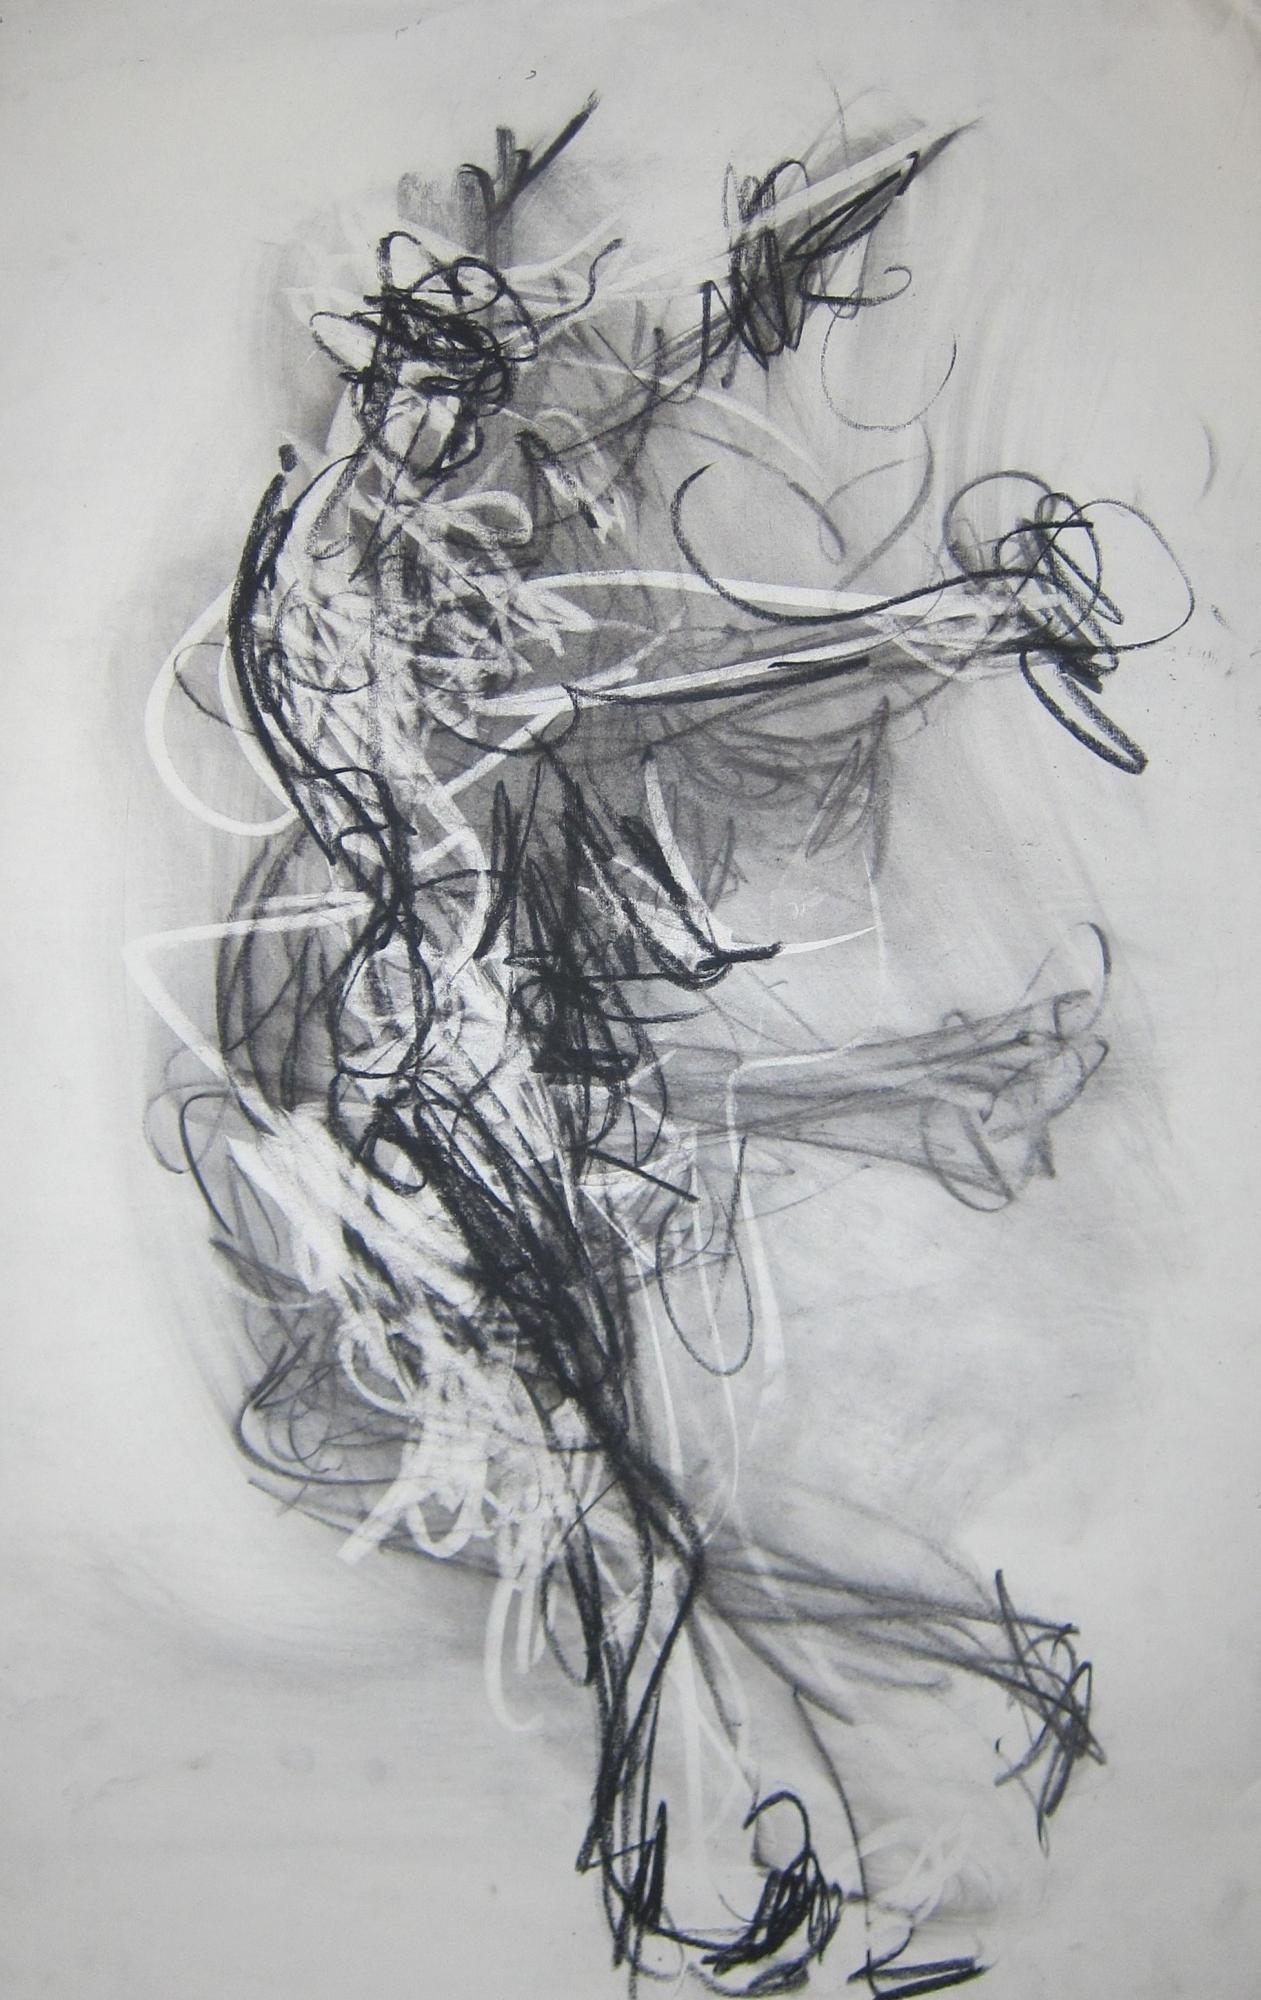 Dancer #28 37x23 charcoal on paper